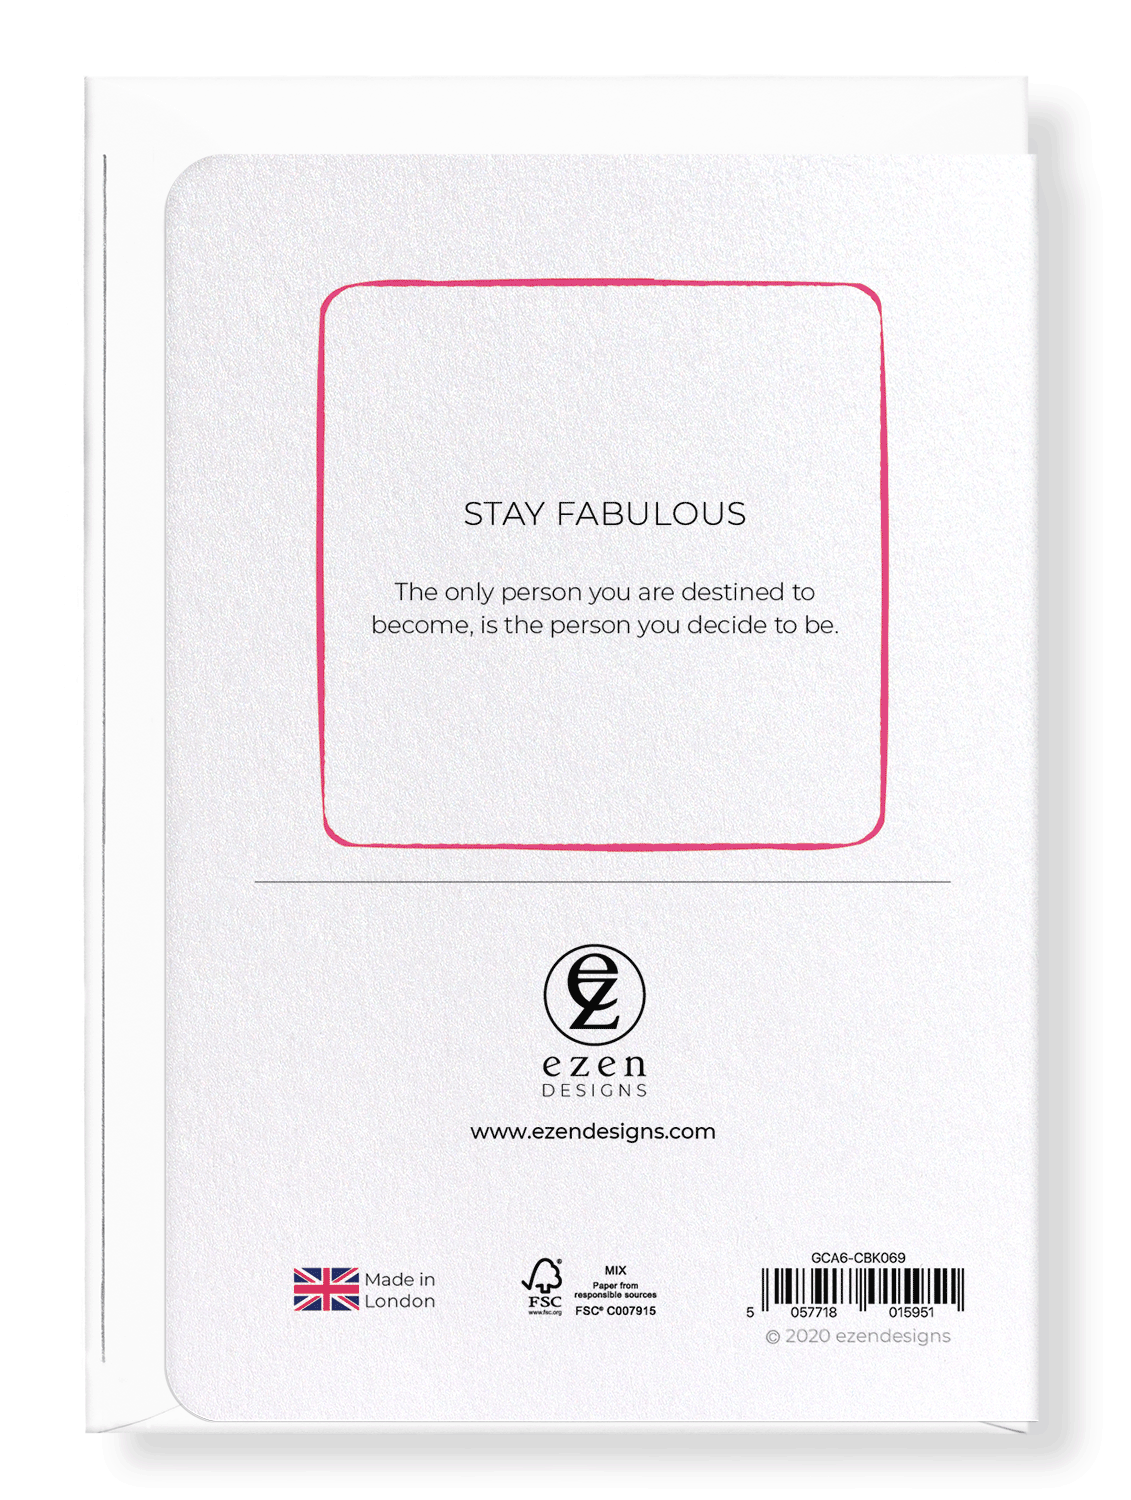 Ezen Designs - Stay fabulous - Greeting Card - Back